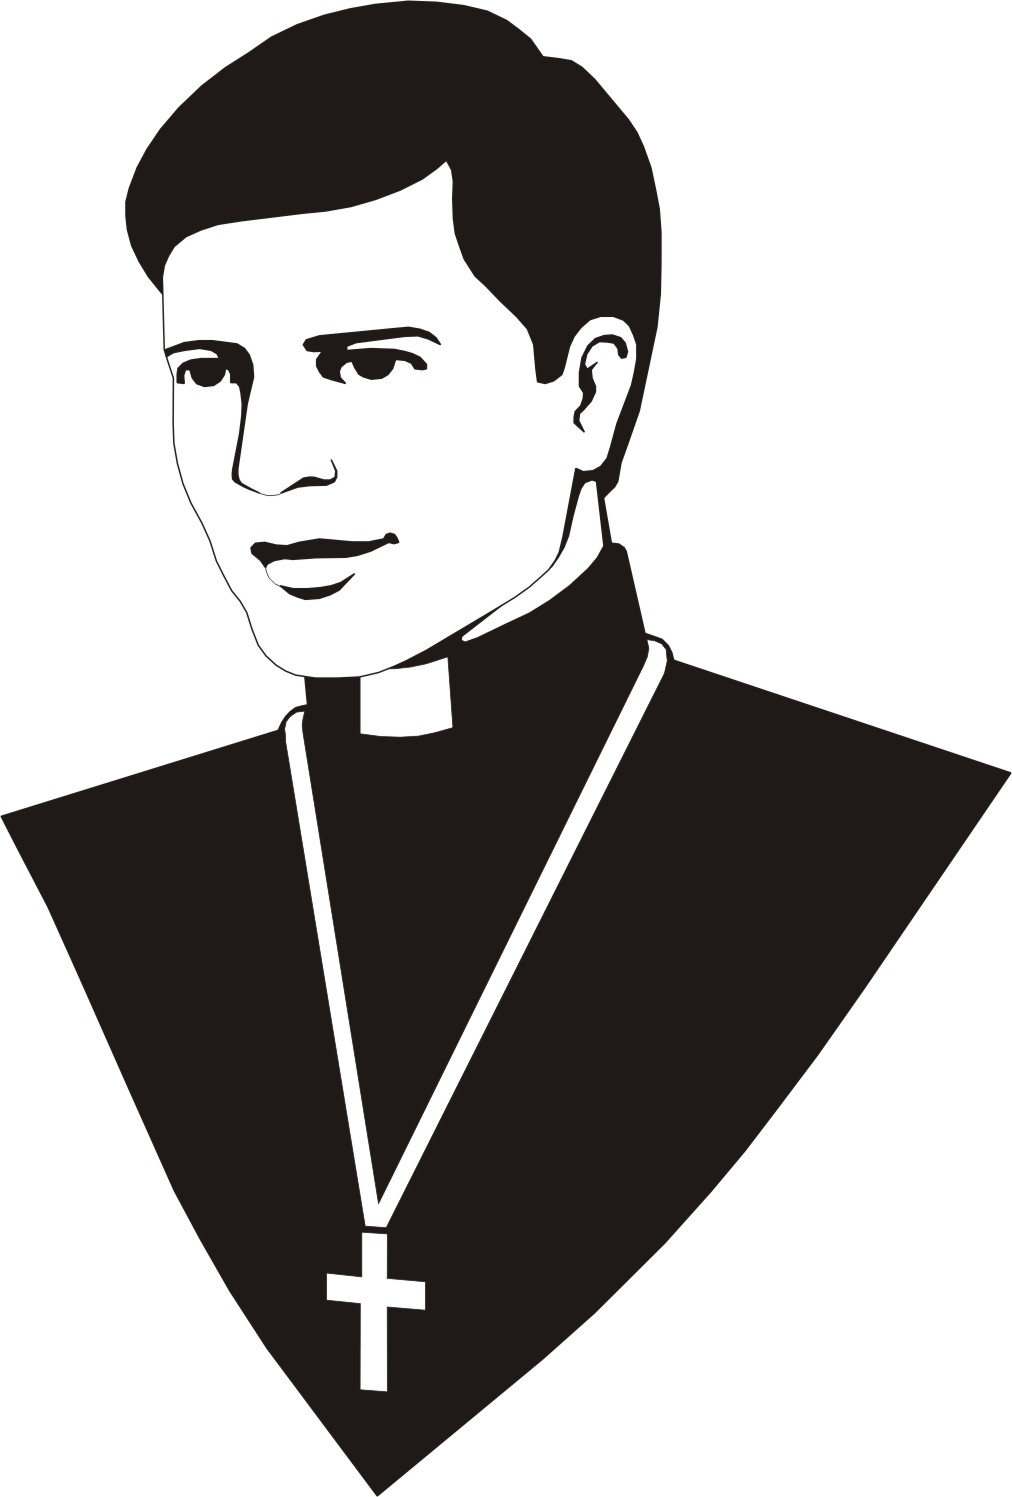 Diary of a rogue priest angel michael clipart 2